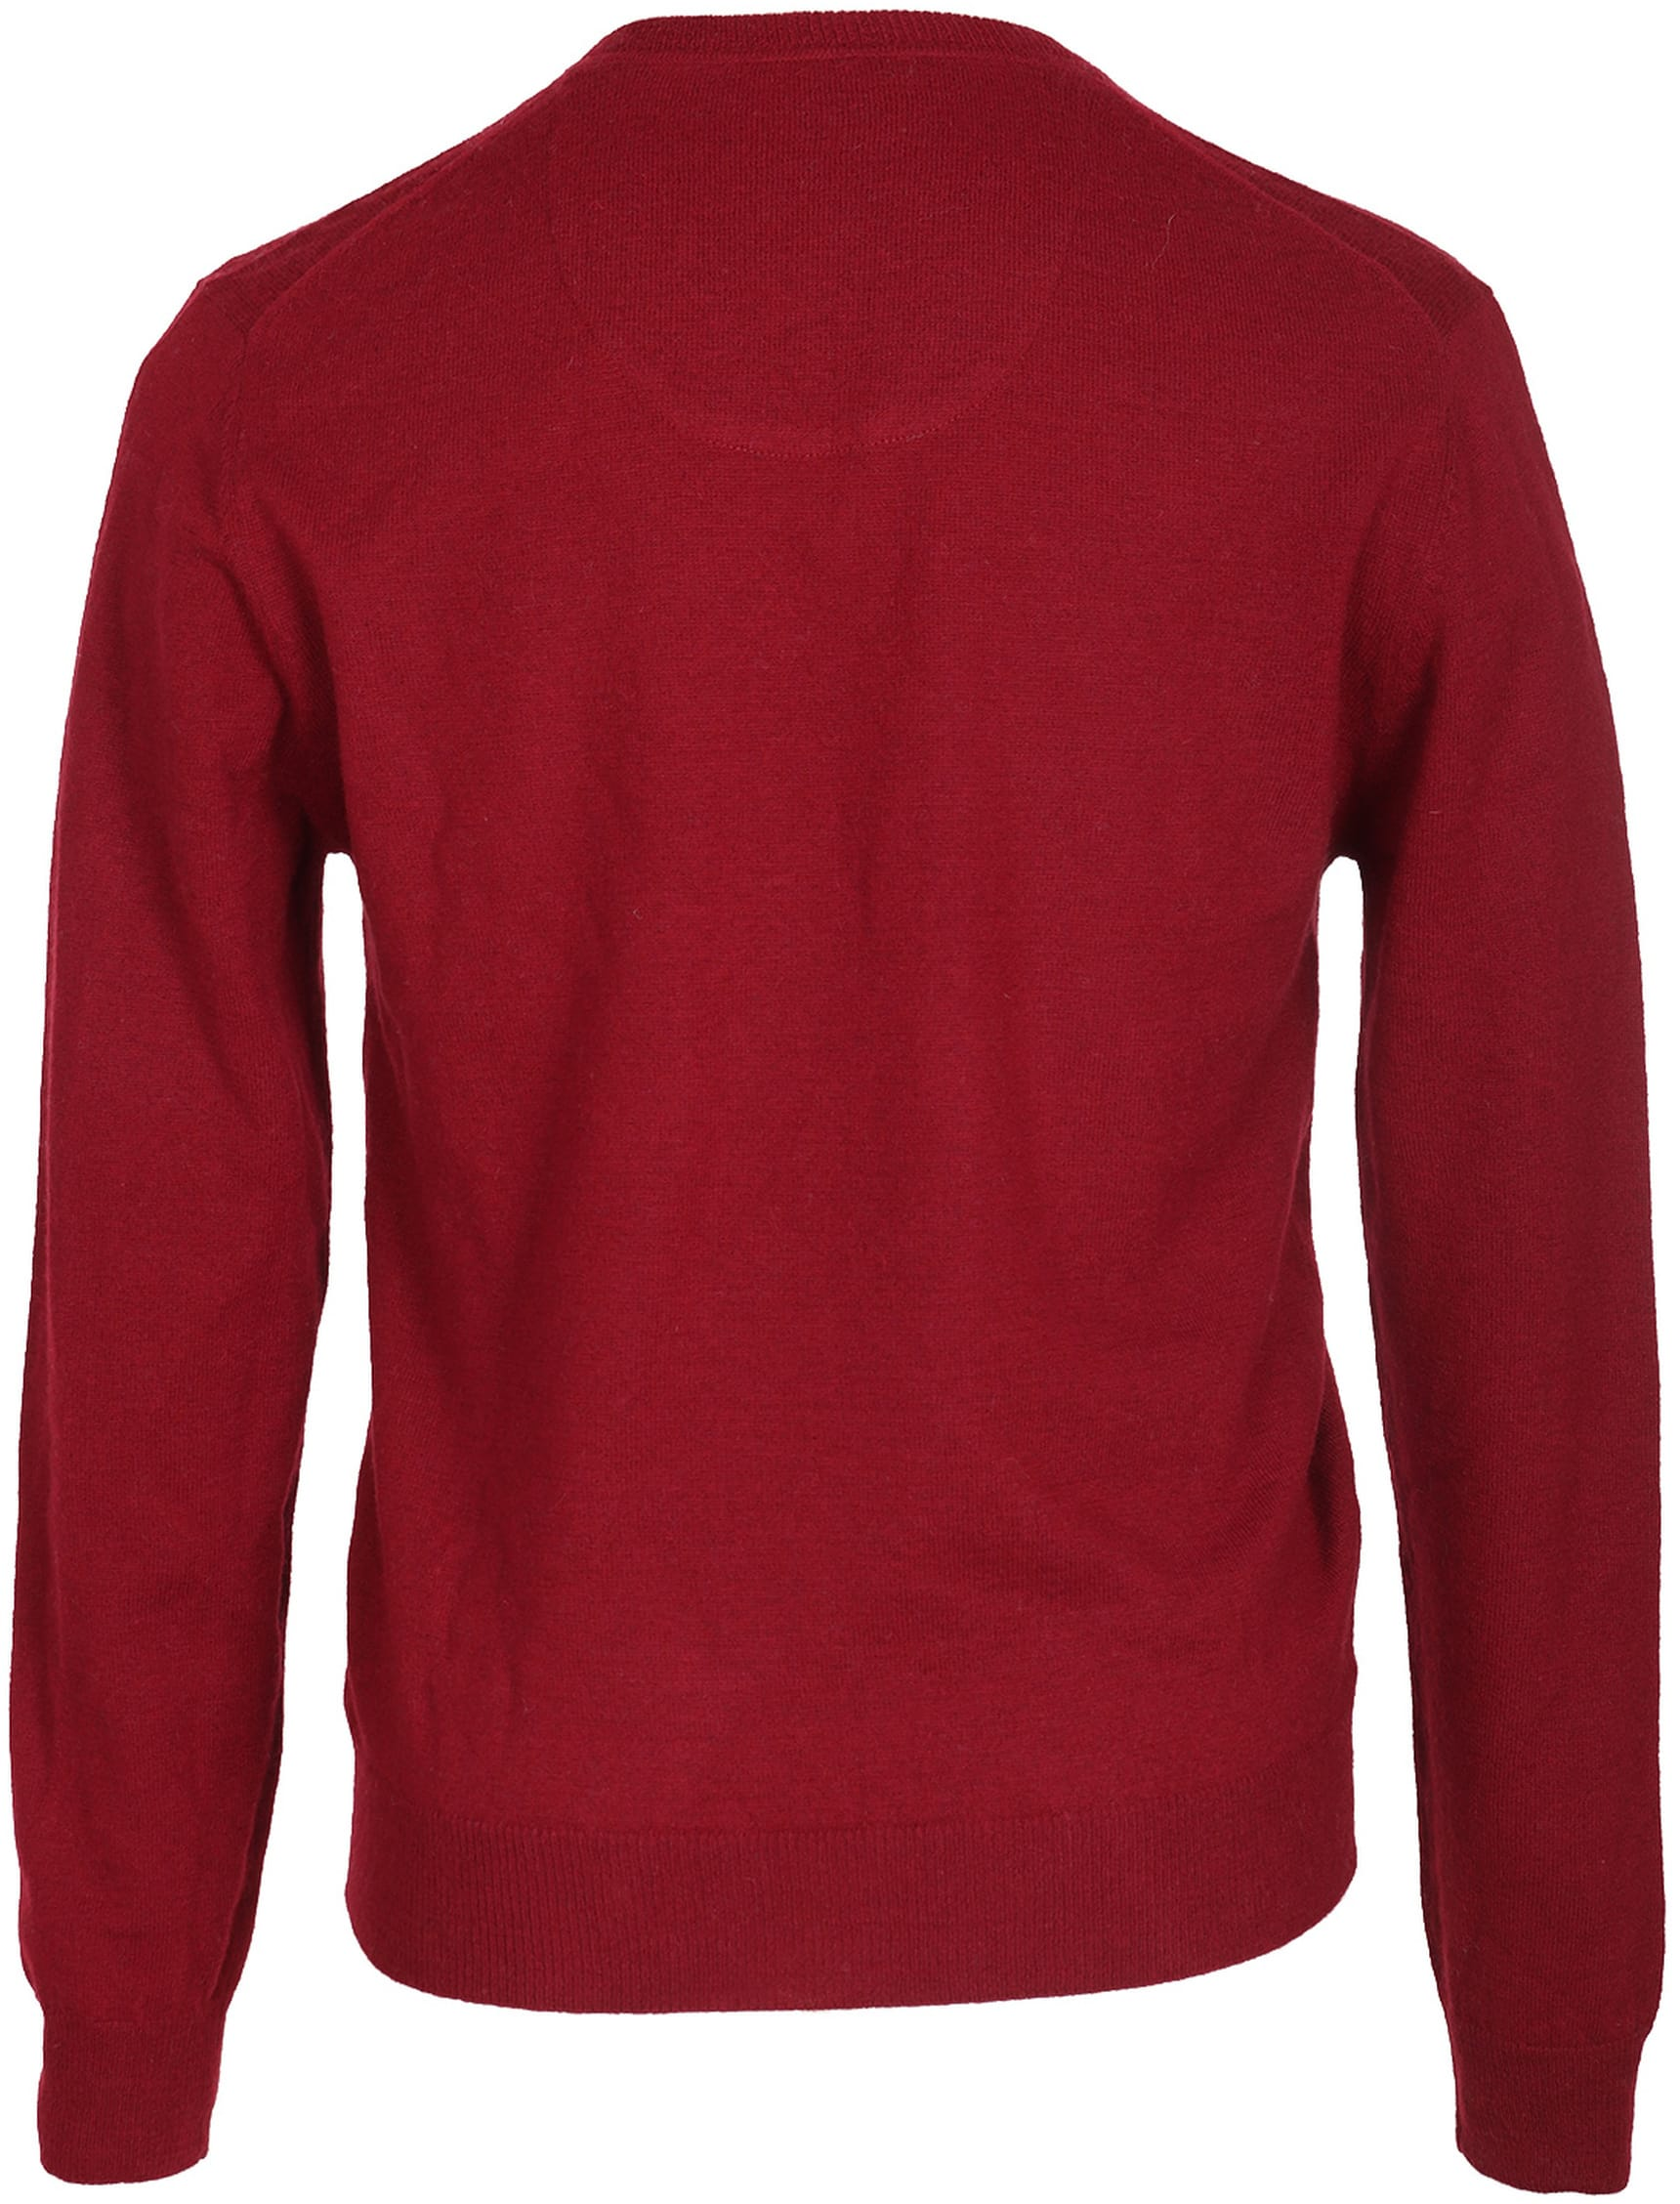 Suitable Pullover Lamswol Bordeaux foto 1